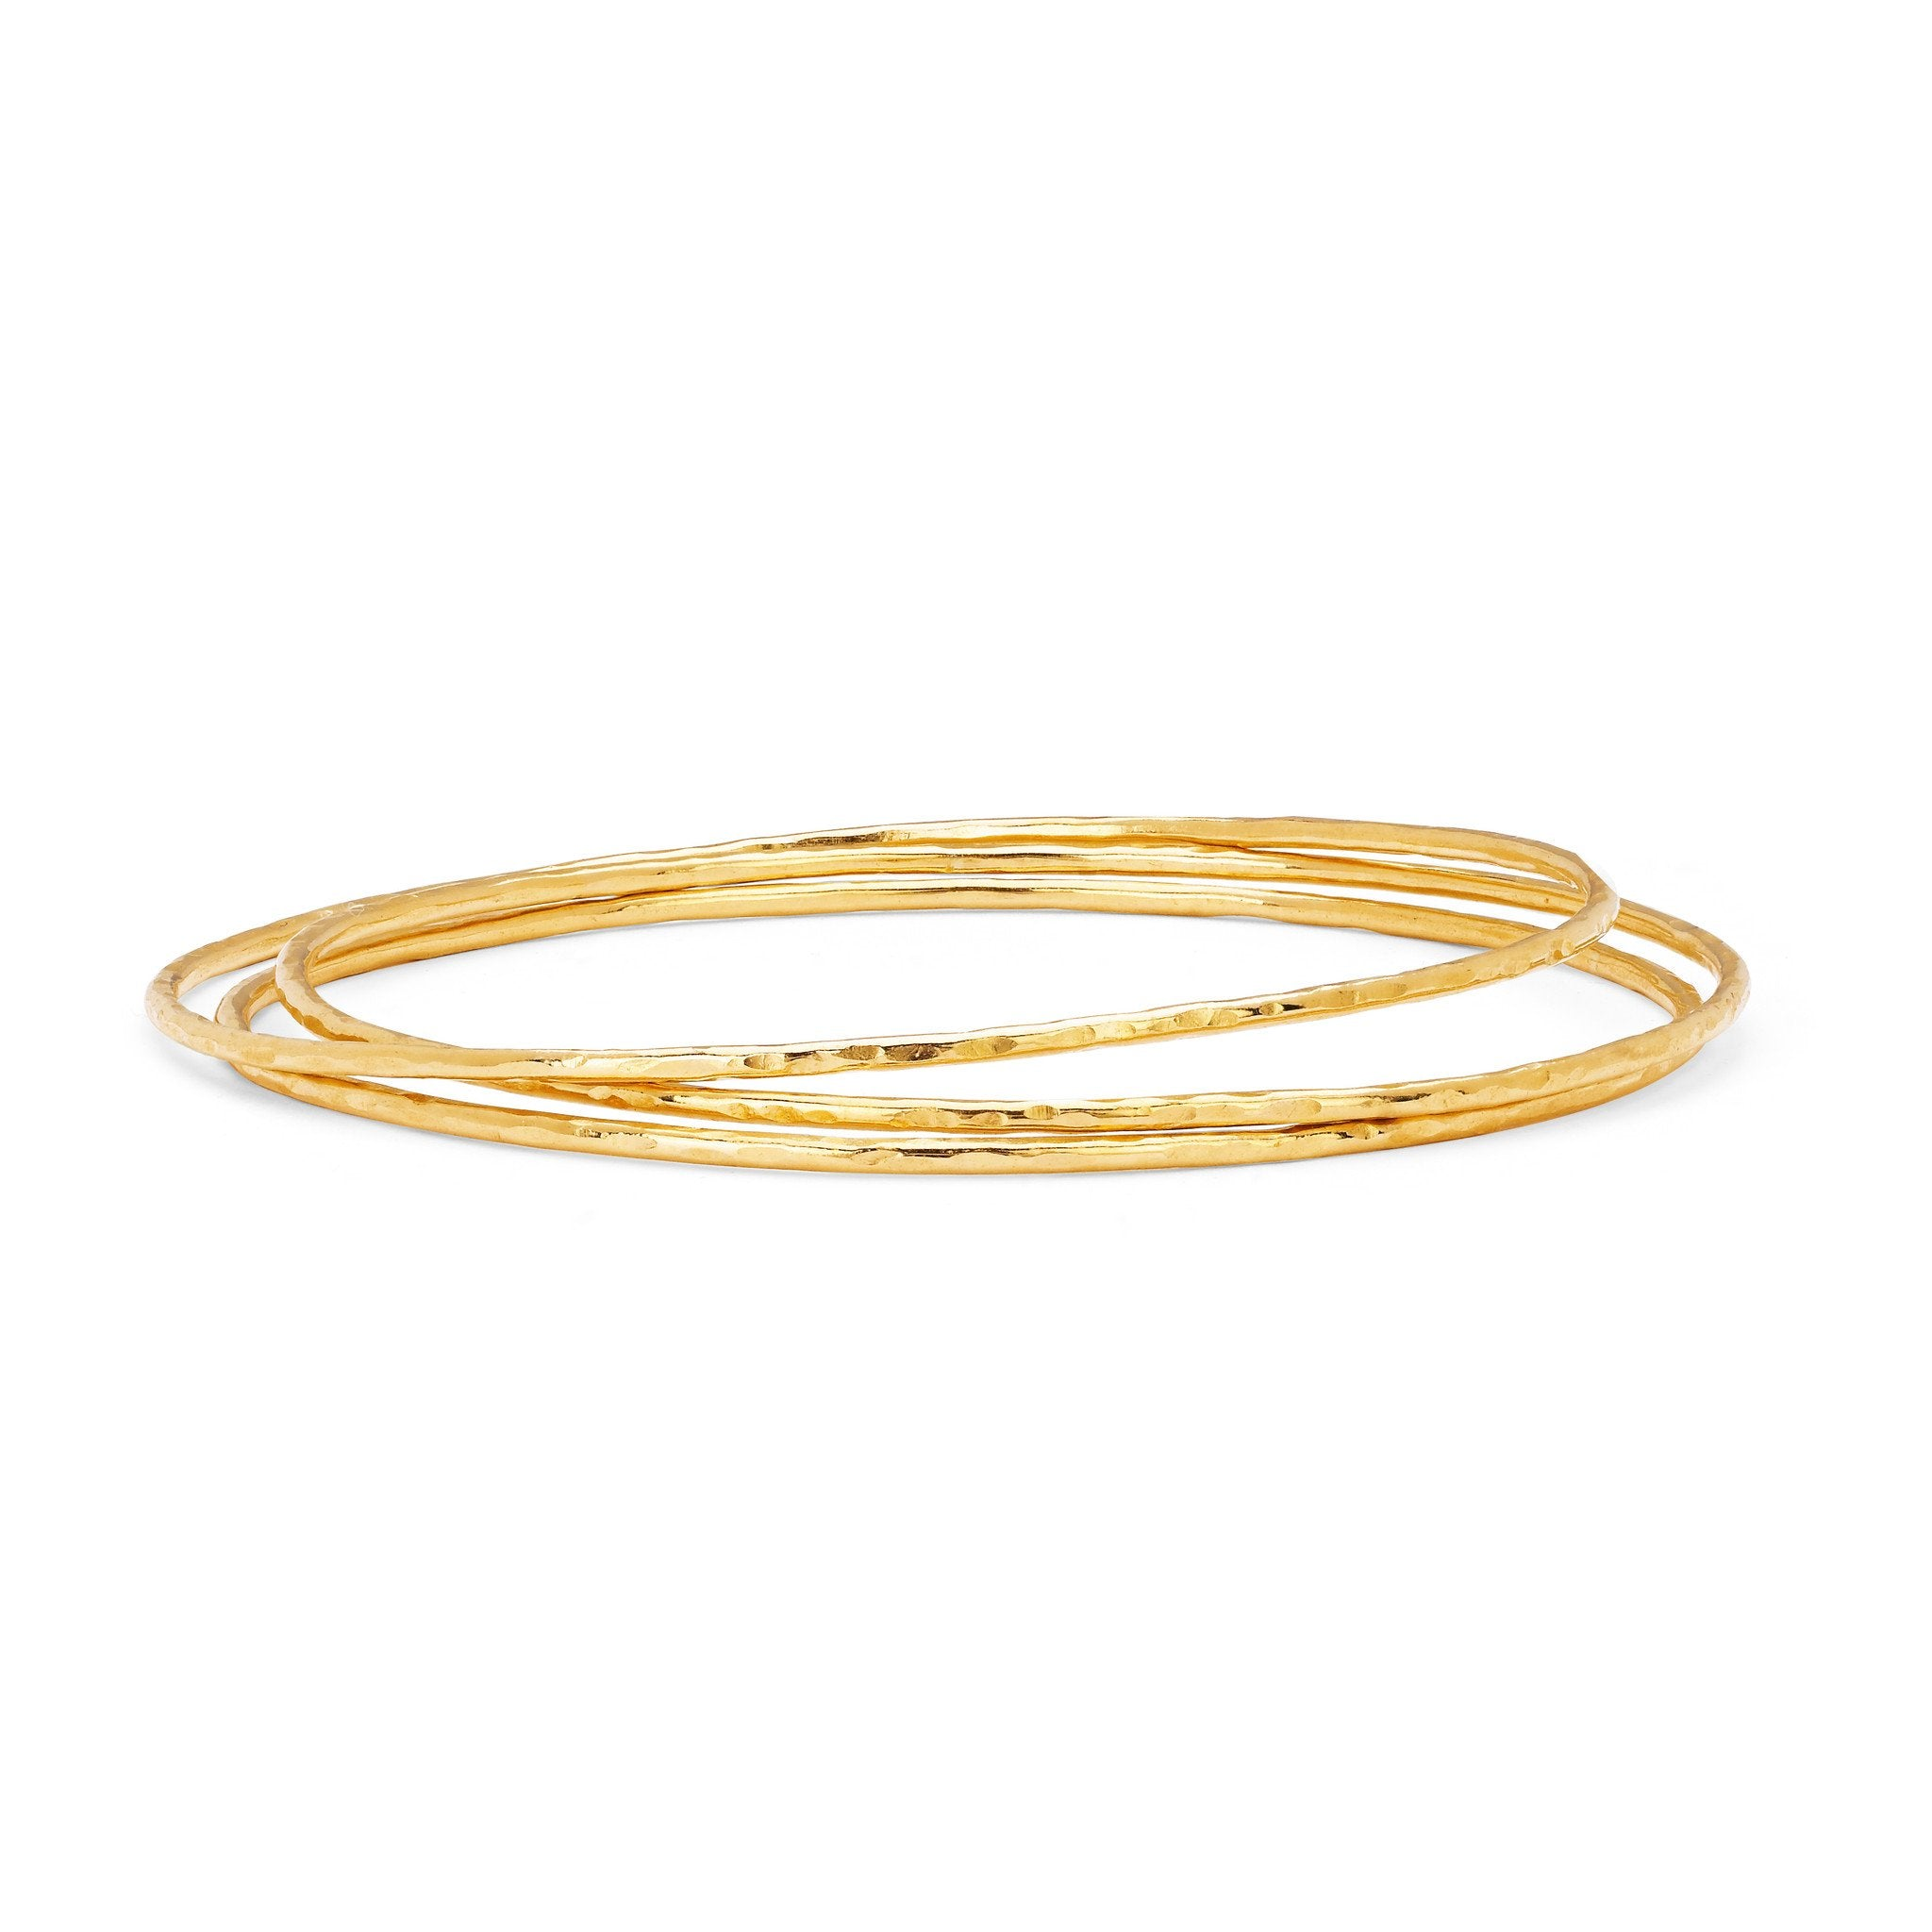 bangles bracelets j l love at for bangle id gold contemporary popular bracelet yellow jewelry cartier size sale